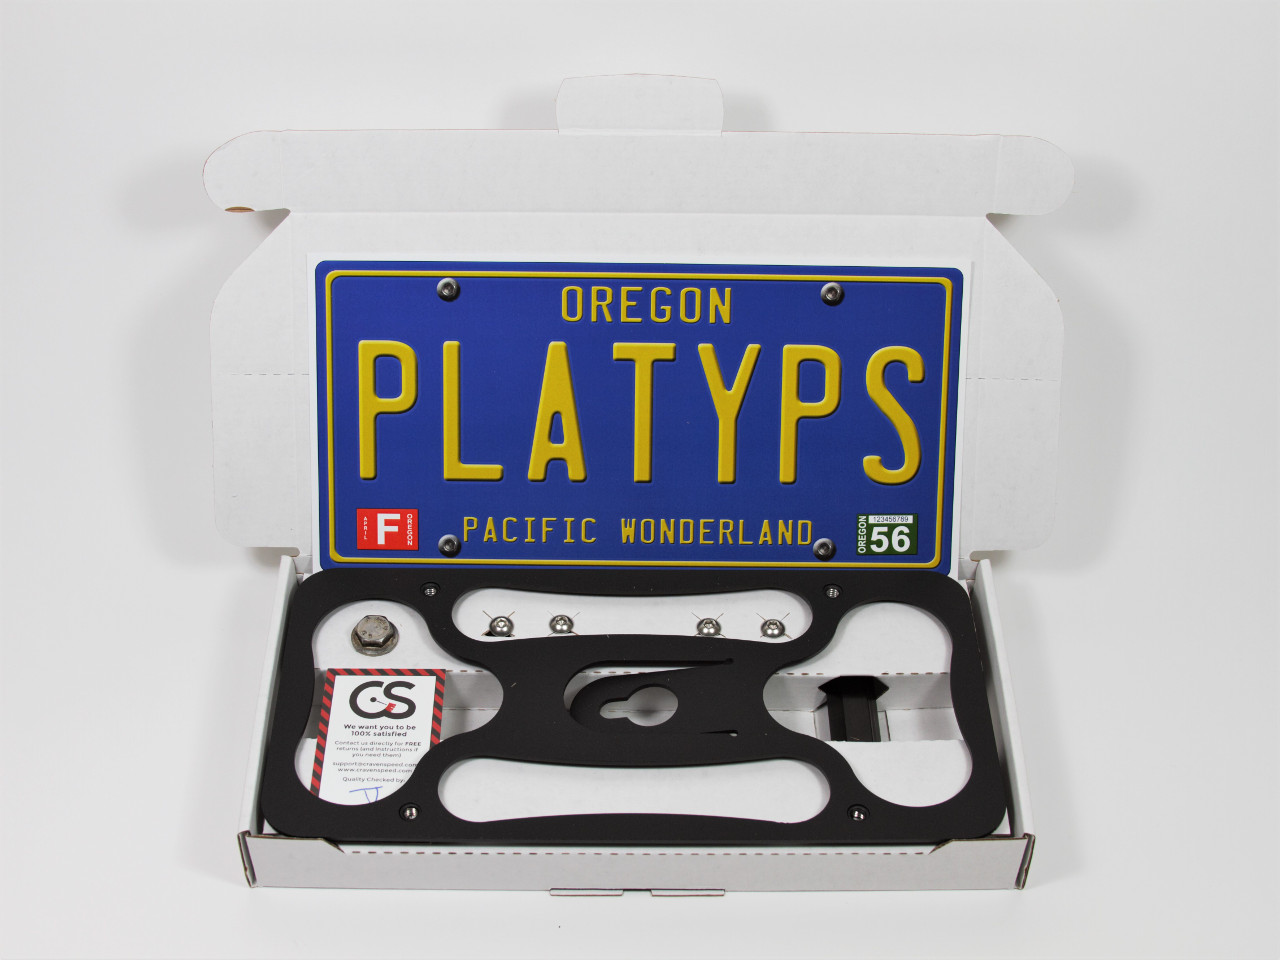 Assembled kit of The Platypus License Plate Mount for 2006 BMW 330i